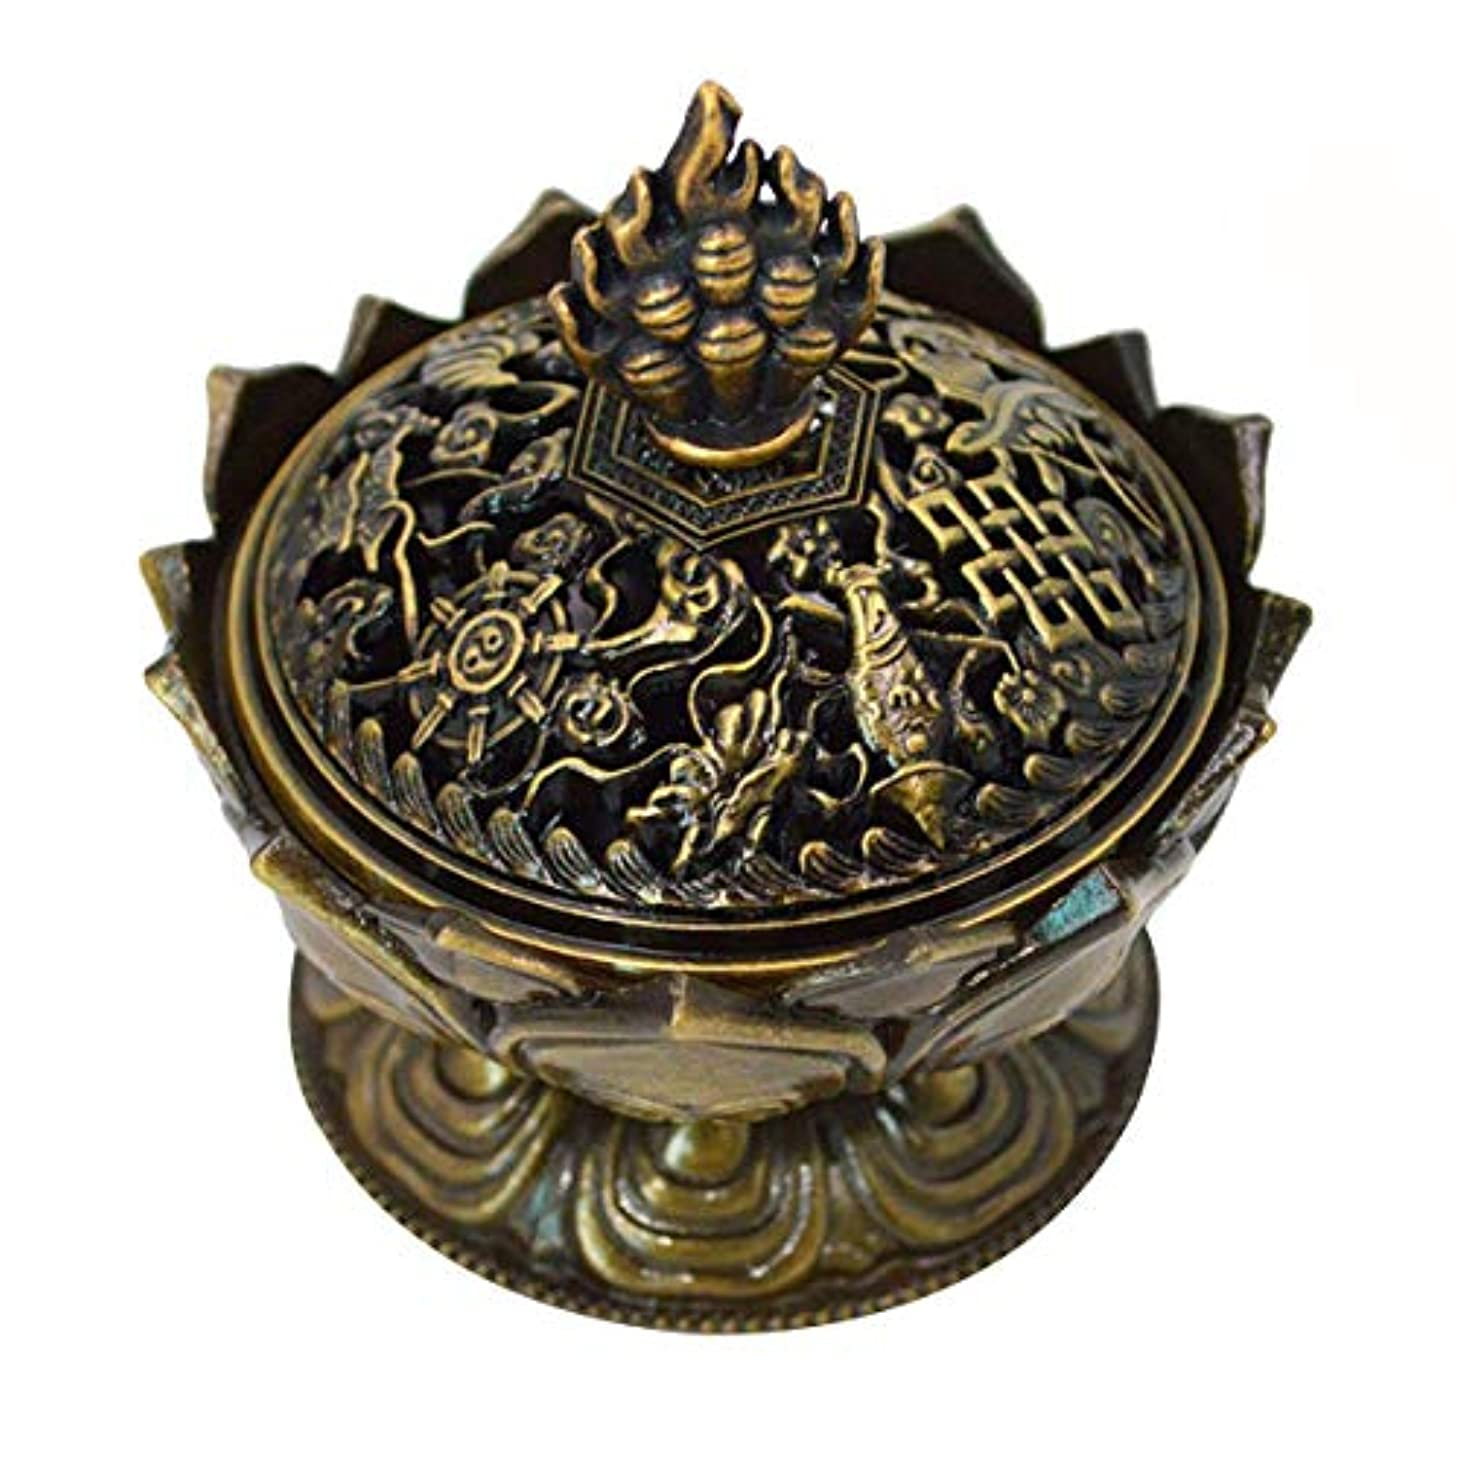 近代化するベジタリアン仕立て屋(Bronze) - Buddha Lotus Flower Incense Burner Alloy Metal Incense Holder Censer Creative Christmas Gifts (Bronze)